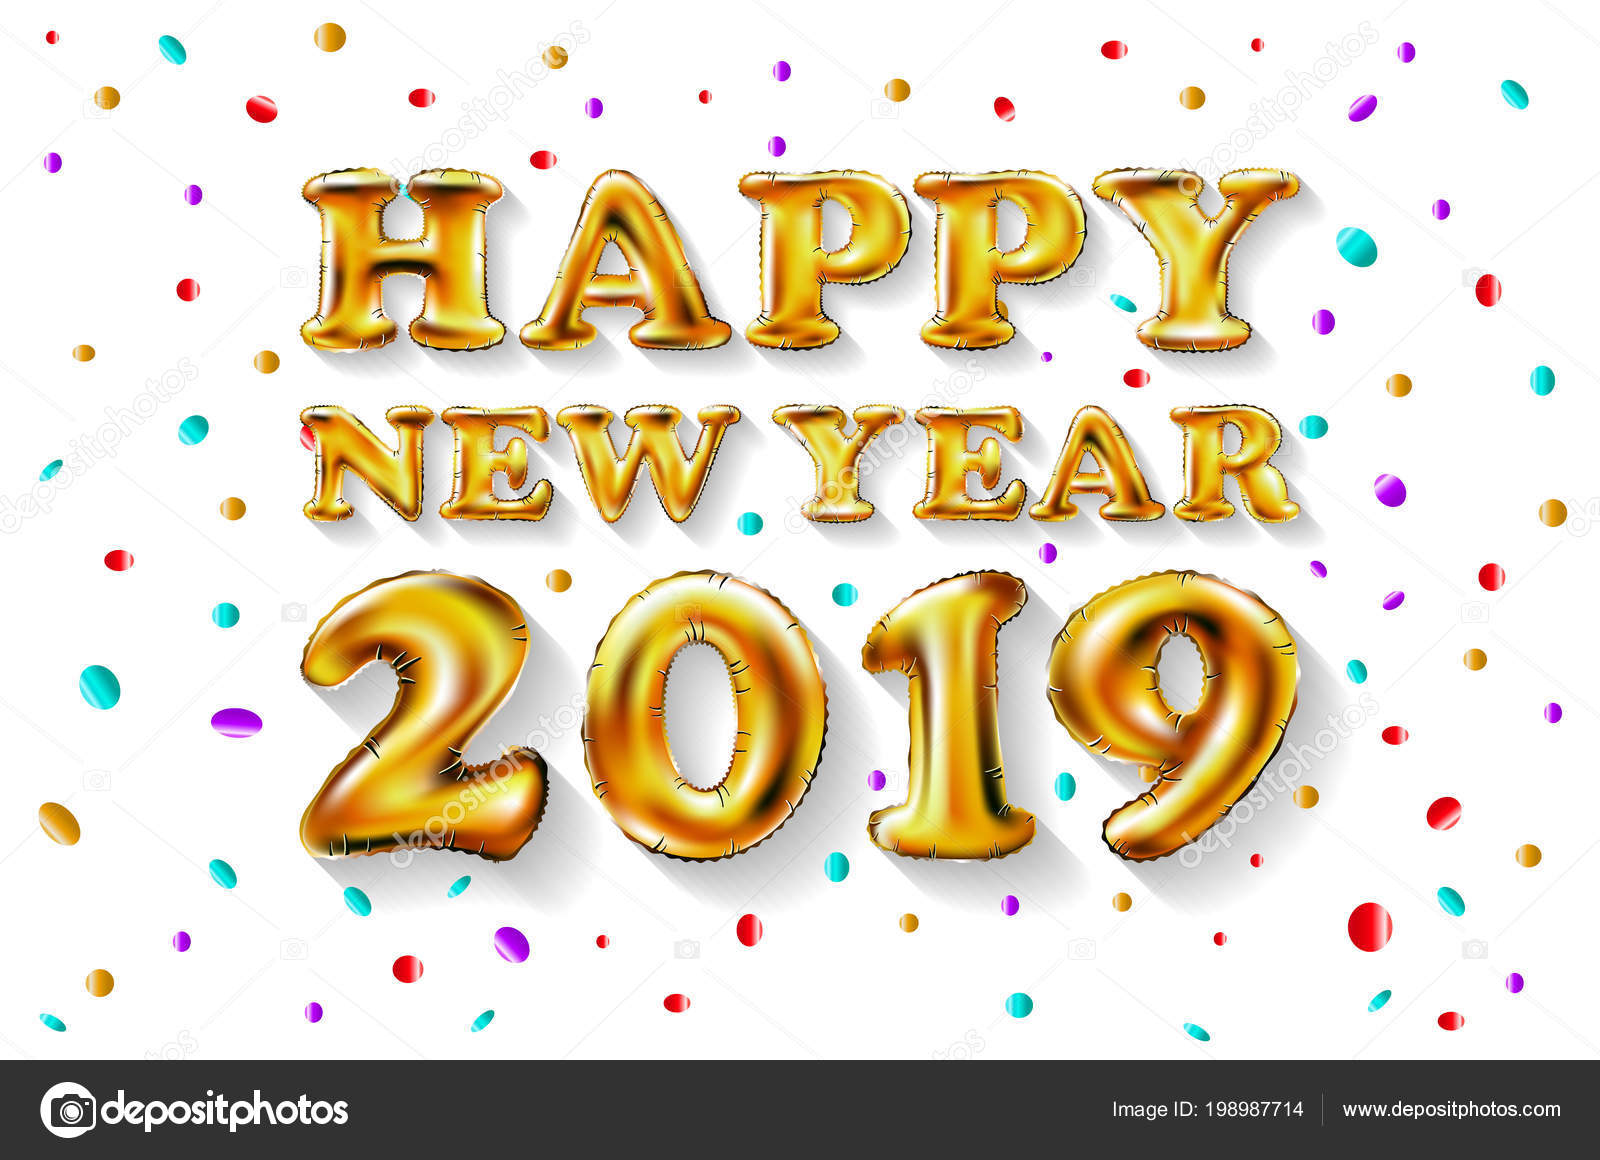 metallic gold letter balloons 2019 happy new year golden number balloons ball air filled decoration celebration congratulation vector art vector by